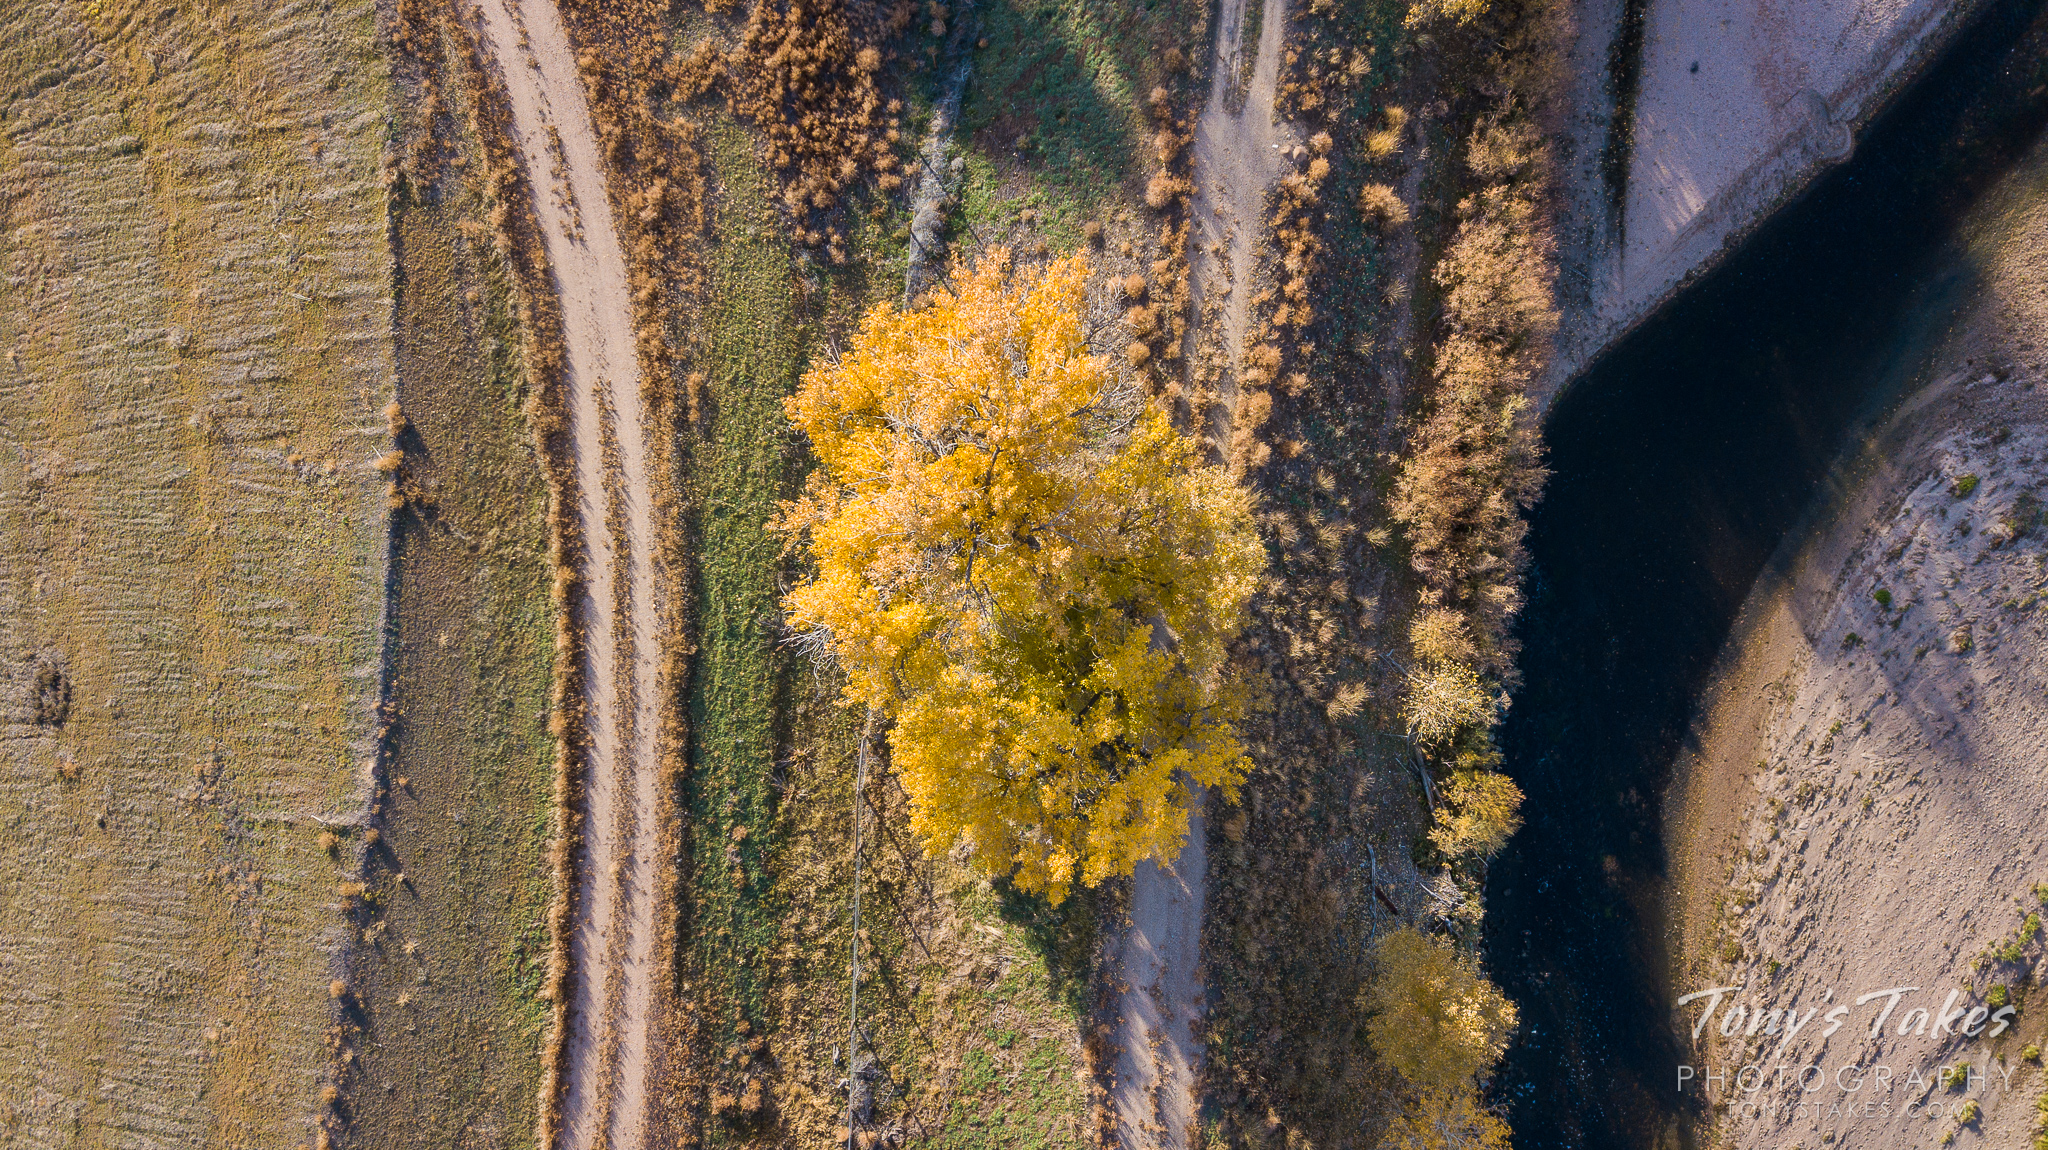 Looking down at fall colors along the South Platte River. (© Tony's Takes)